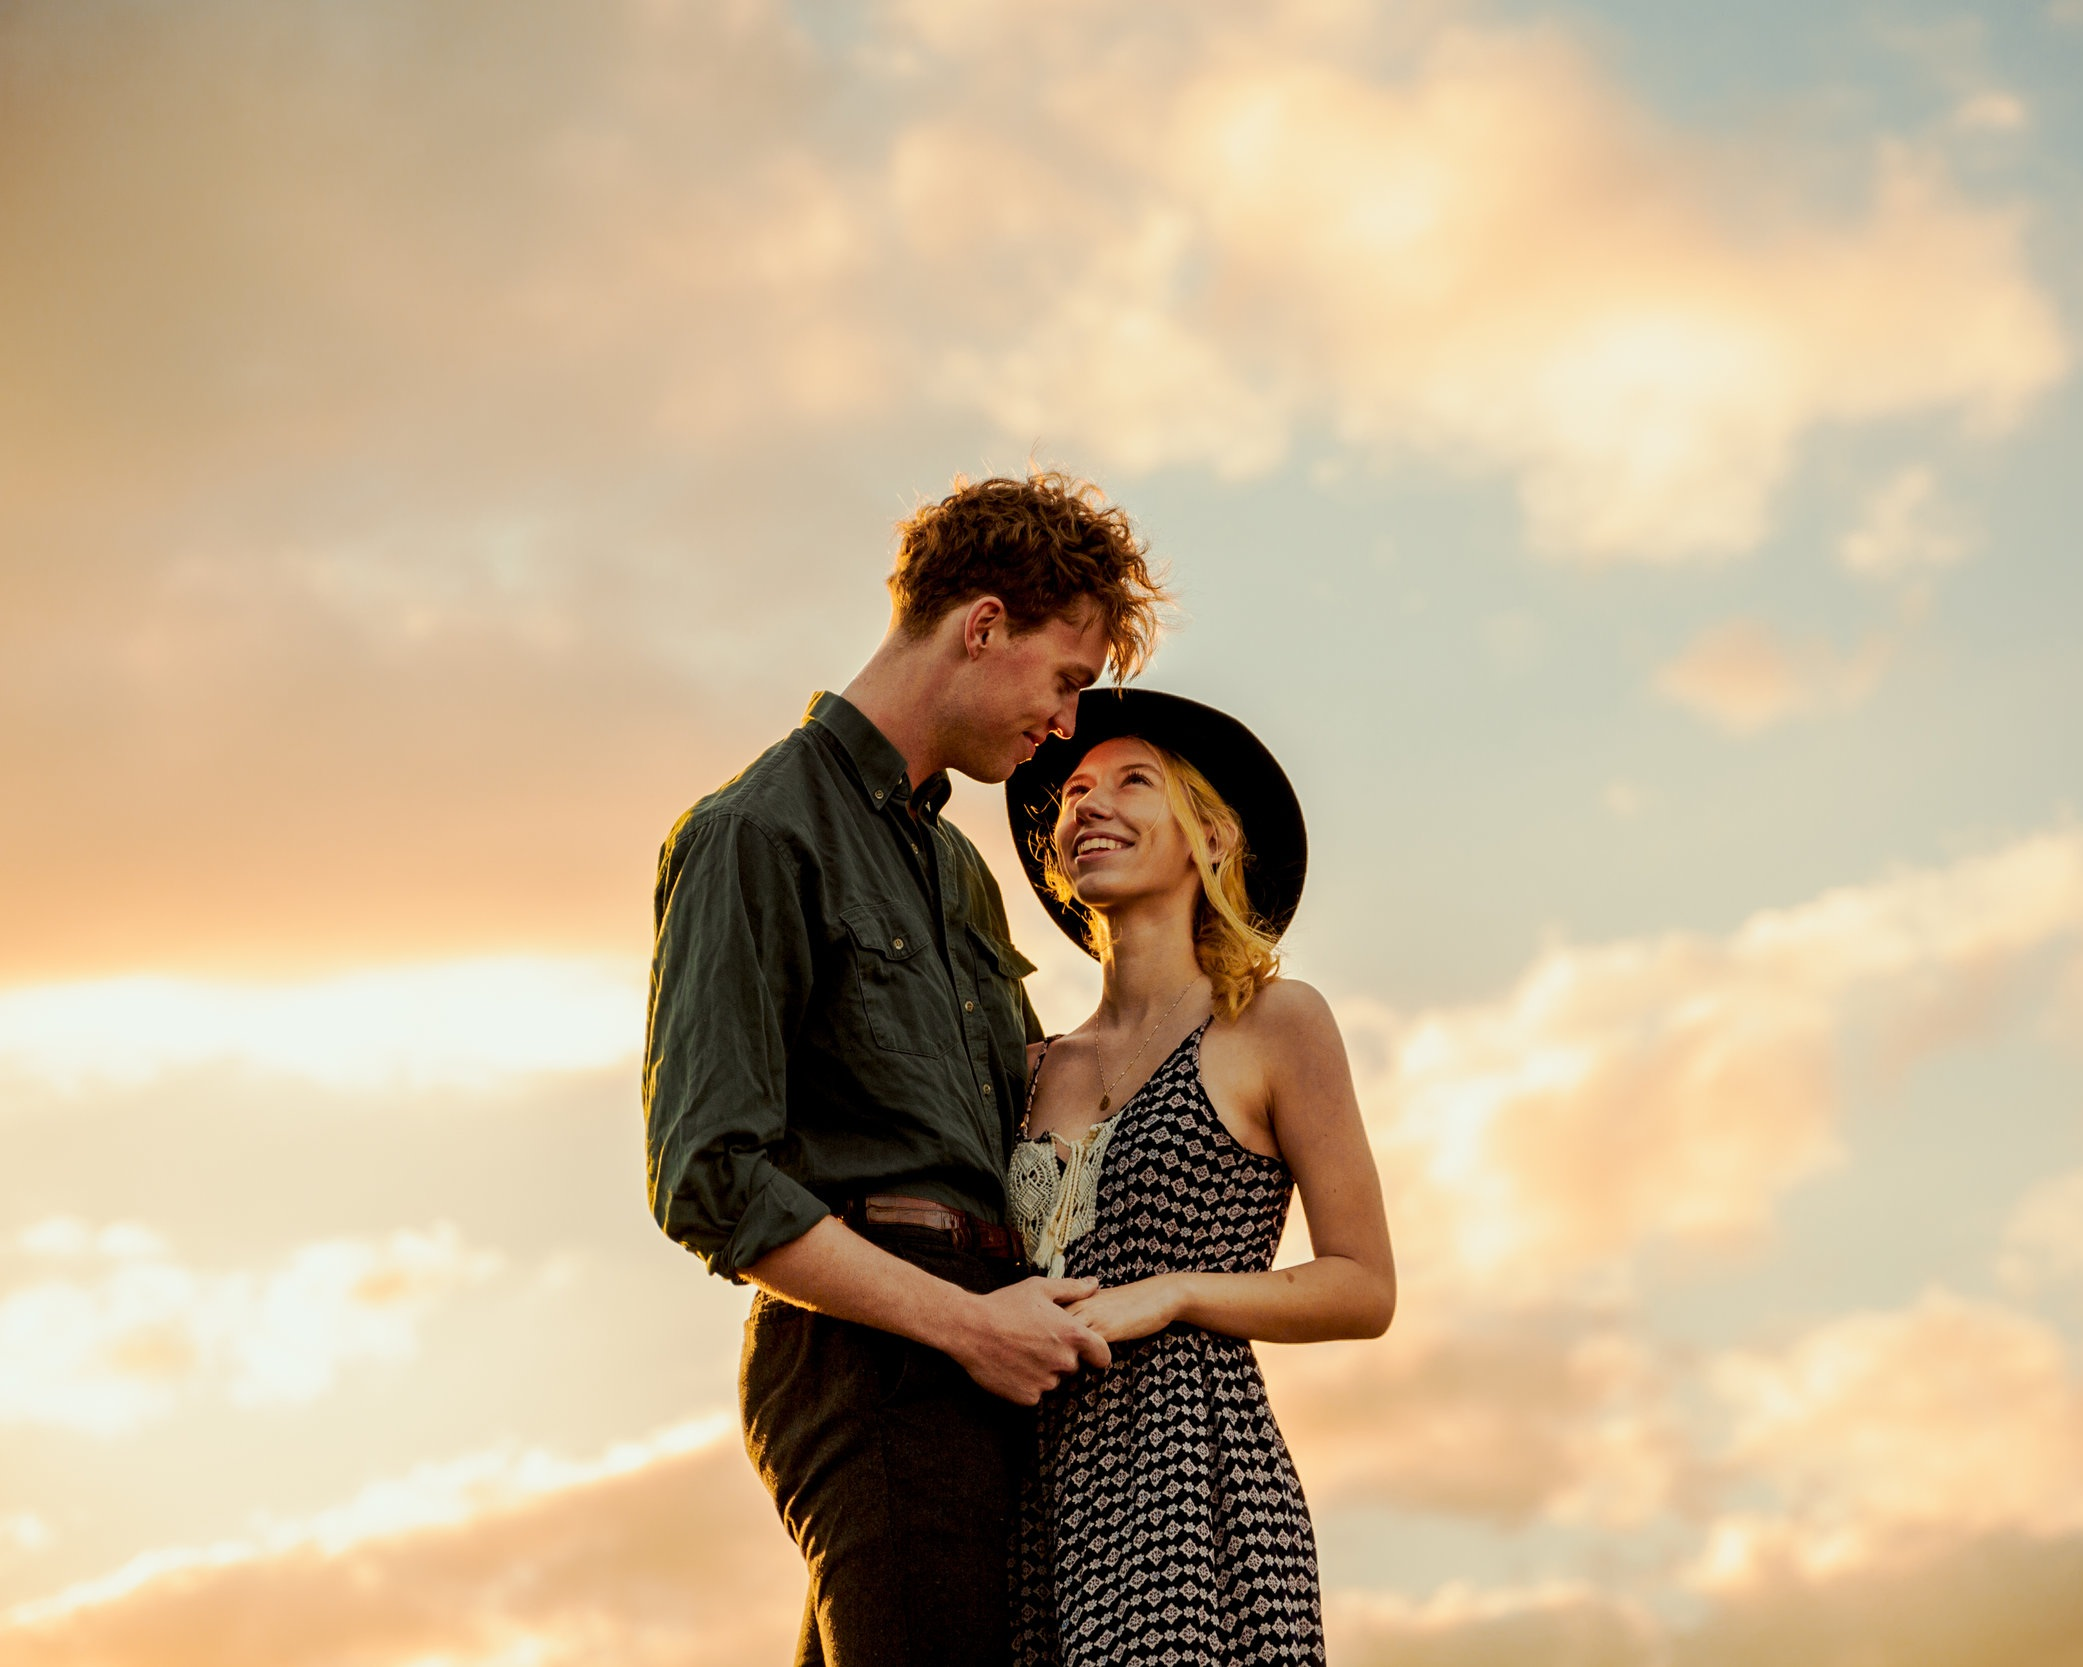 Lauren & Nate - couple session in Clermont, FL